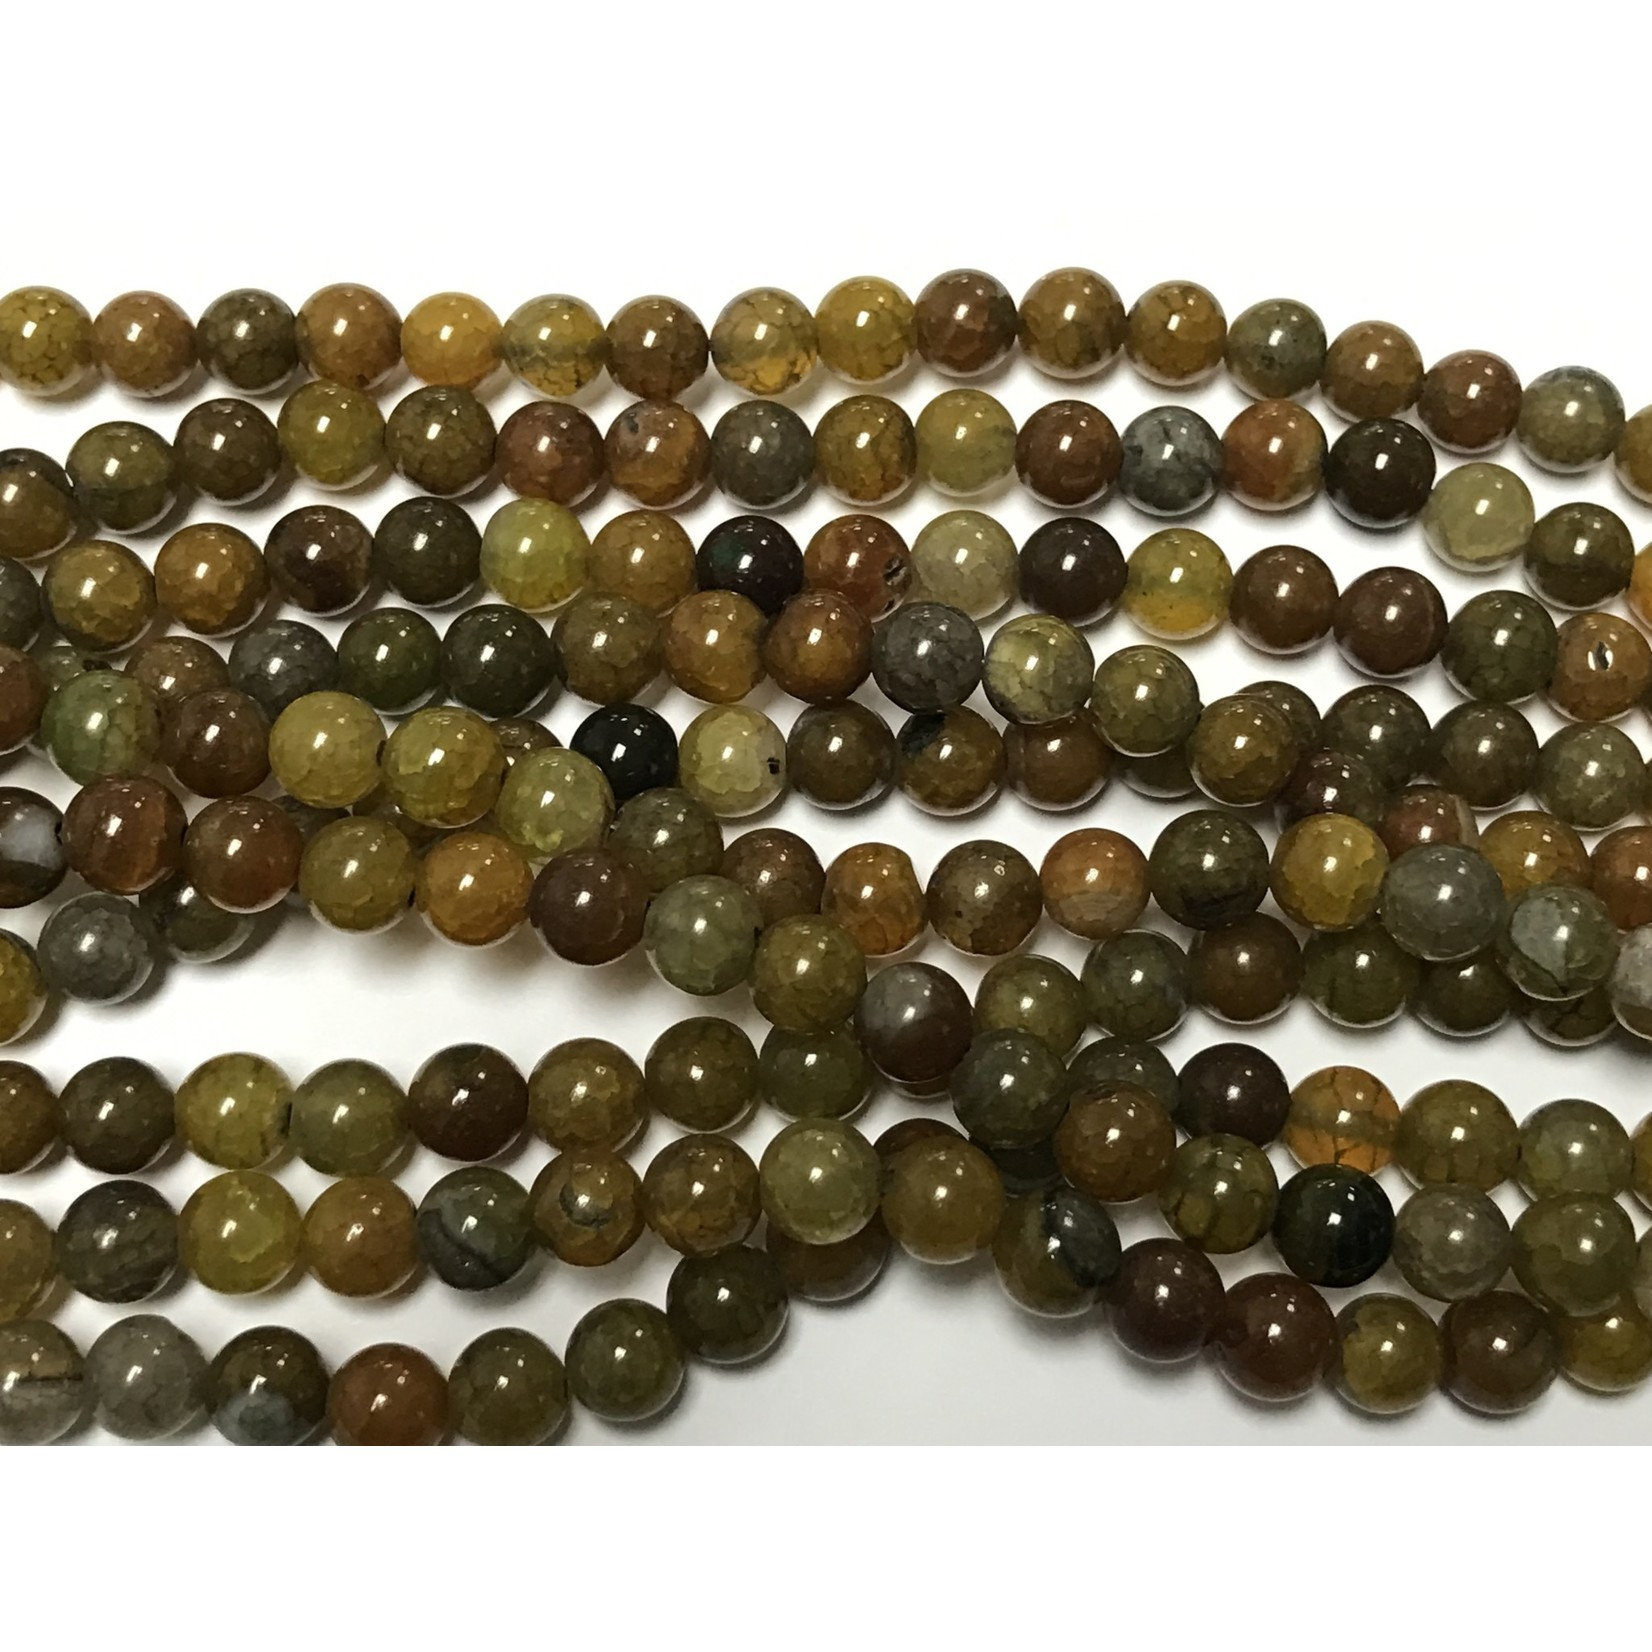 Dyed Fire AGATE Green-Brown 8mm Round